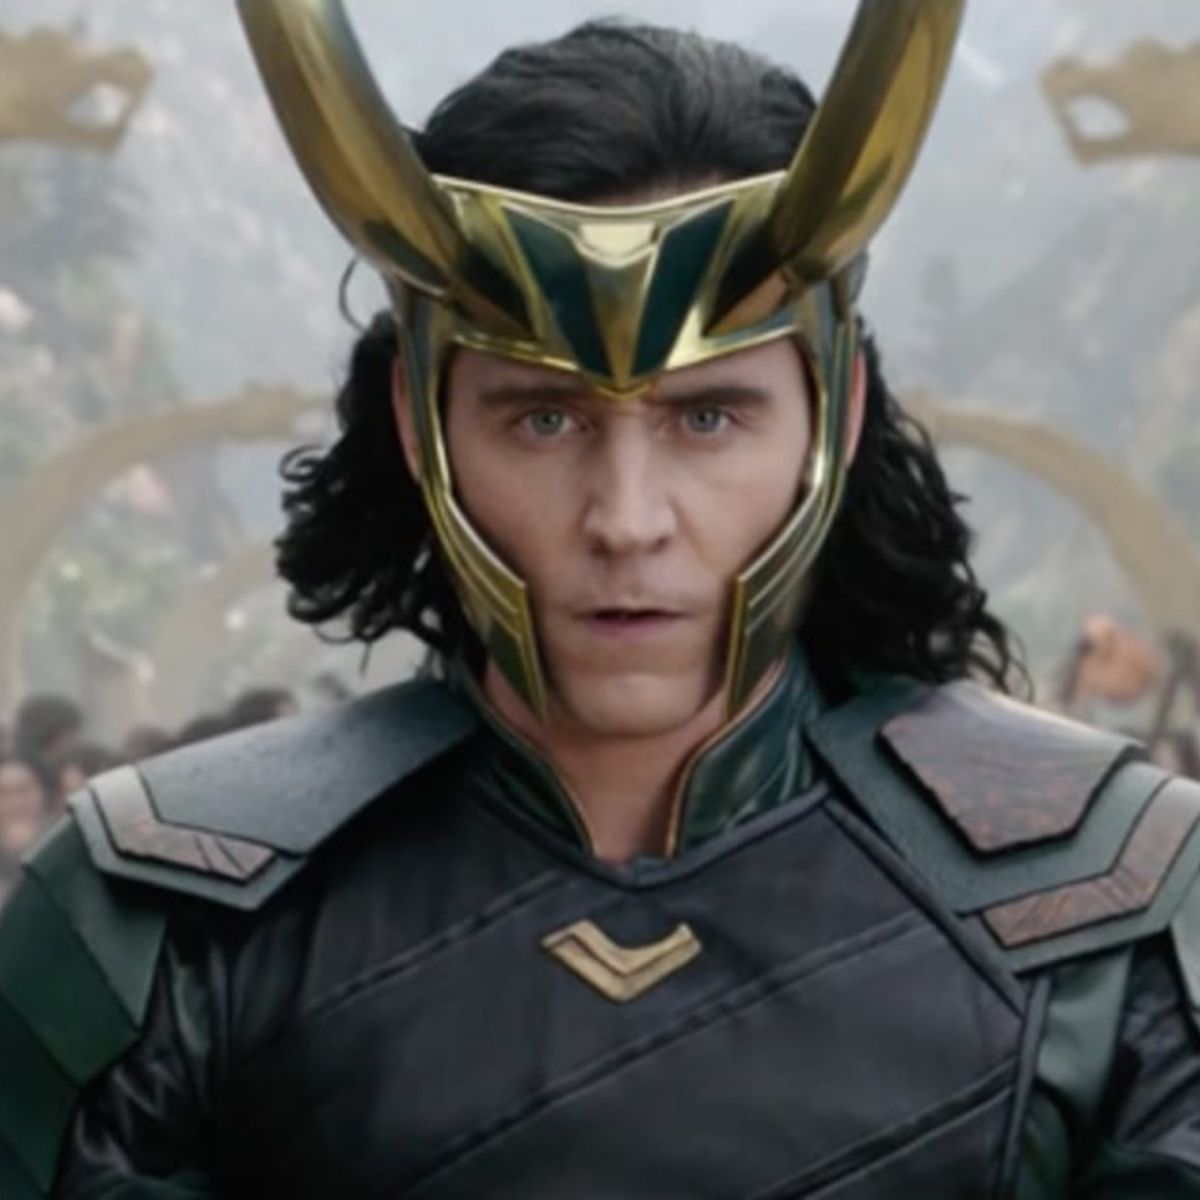 Disney and Marvel apparently aren't quite done with Loki just yet